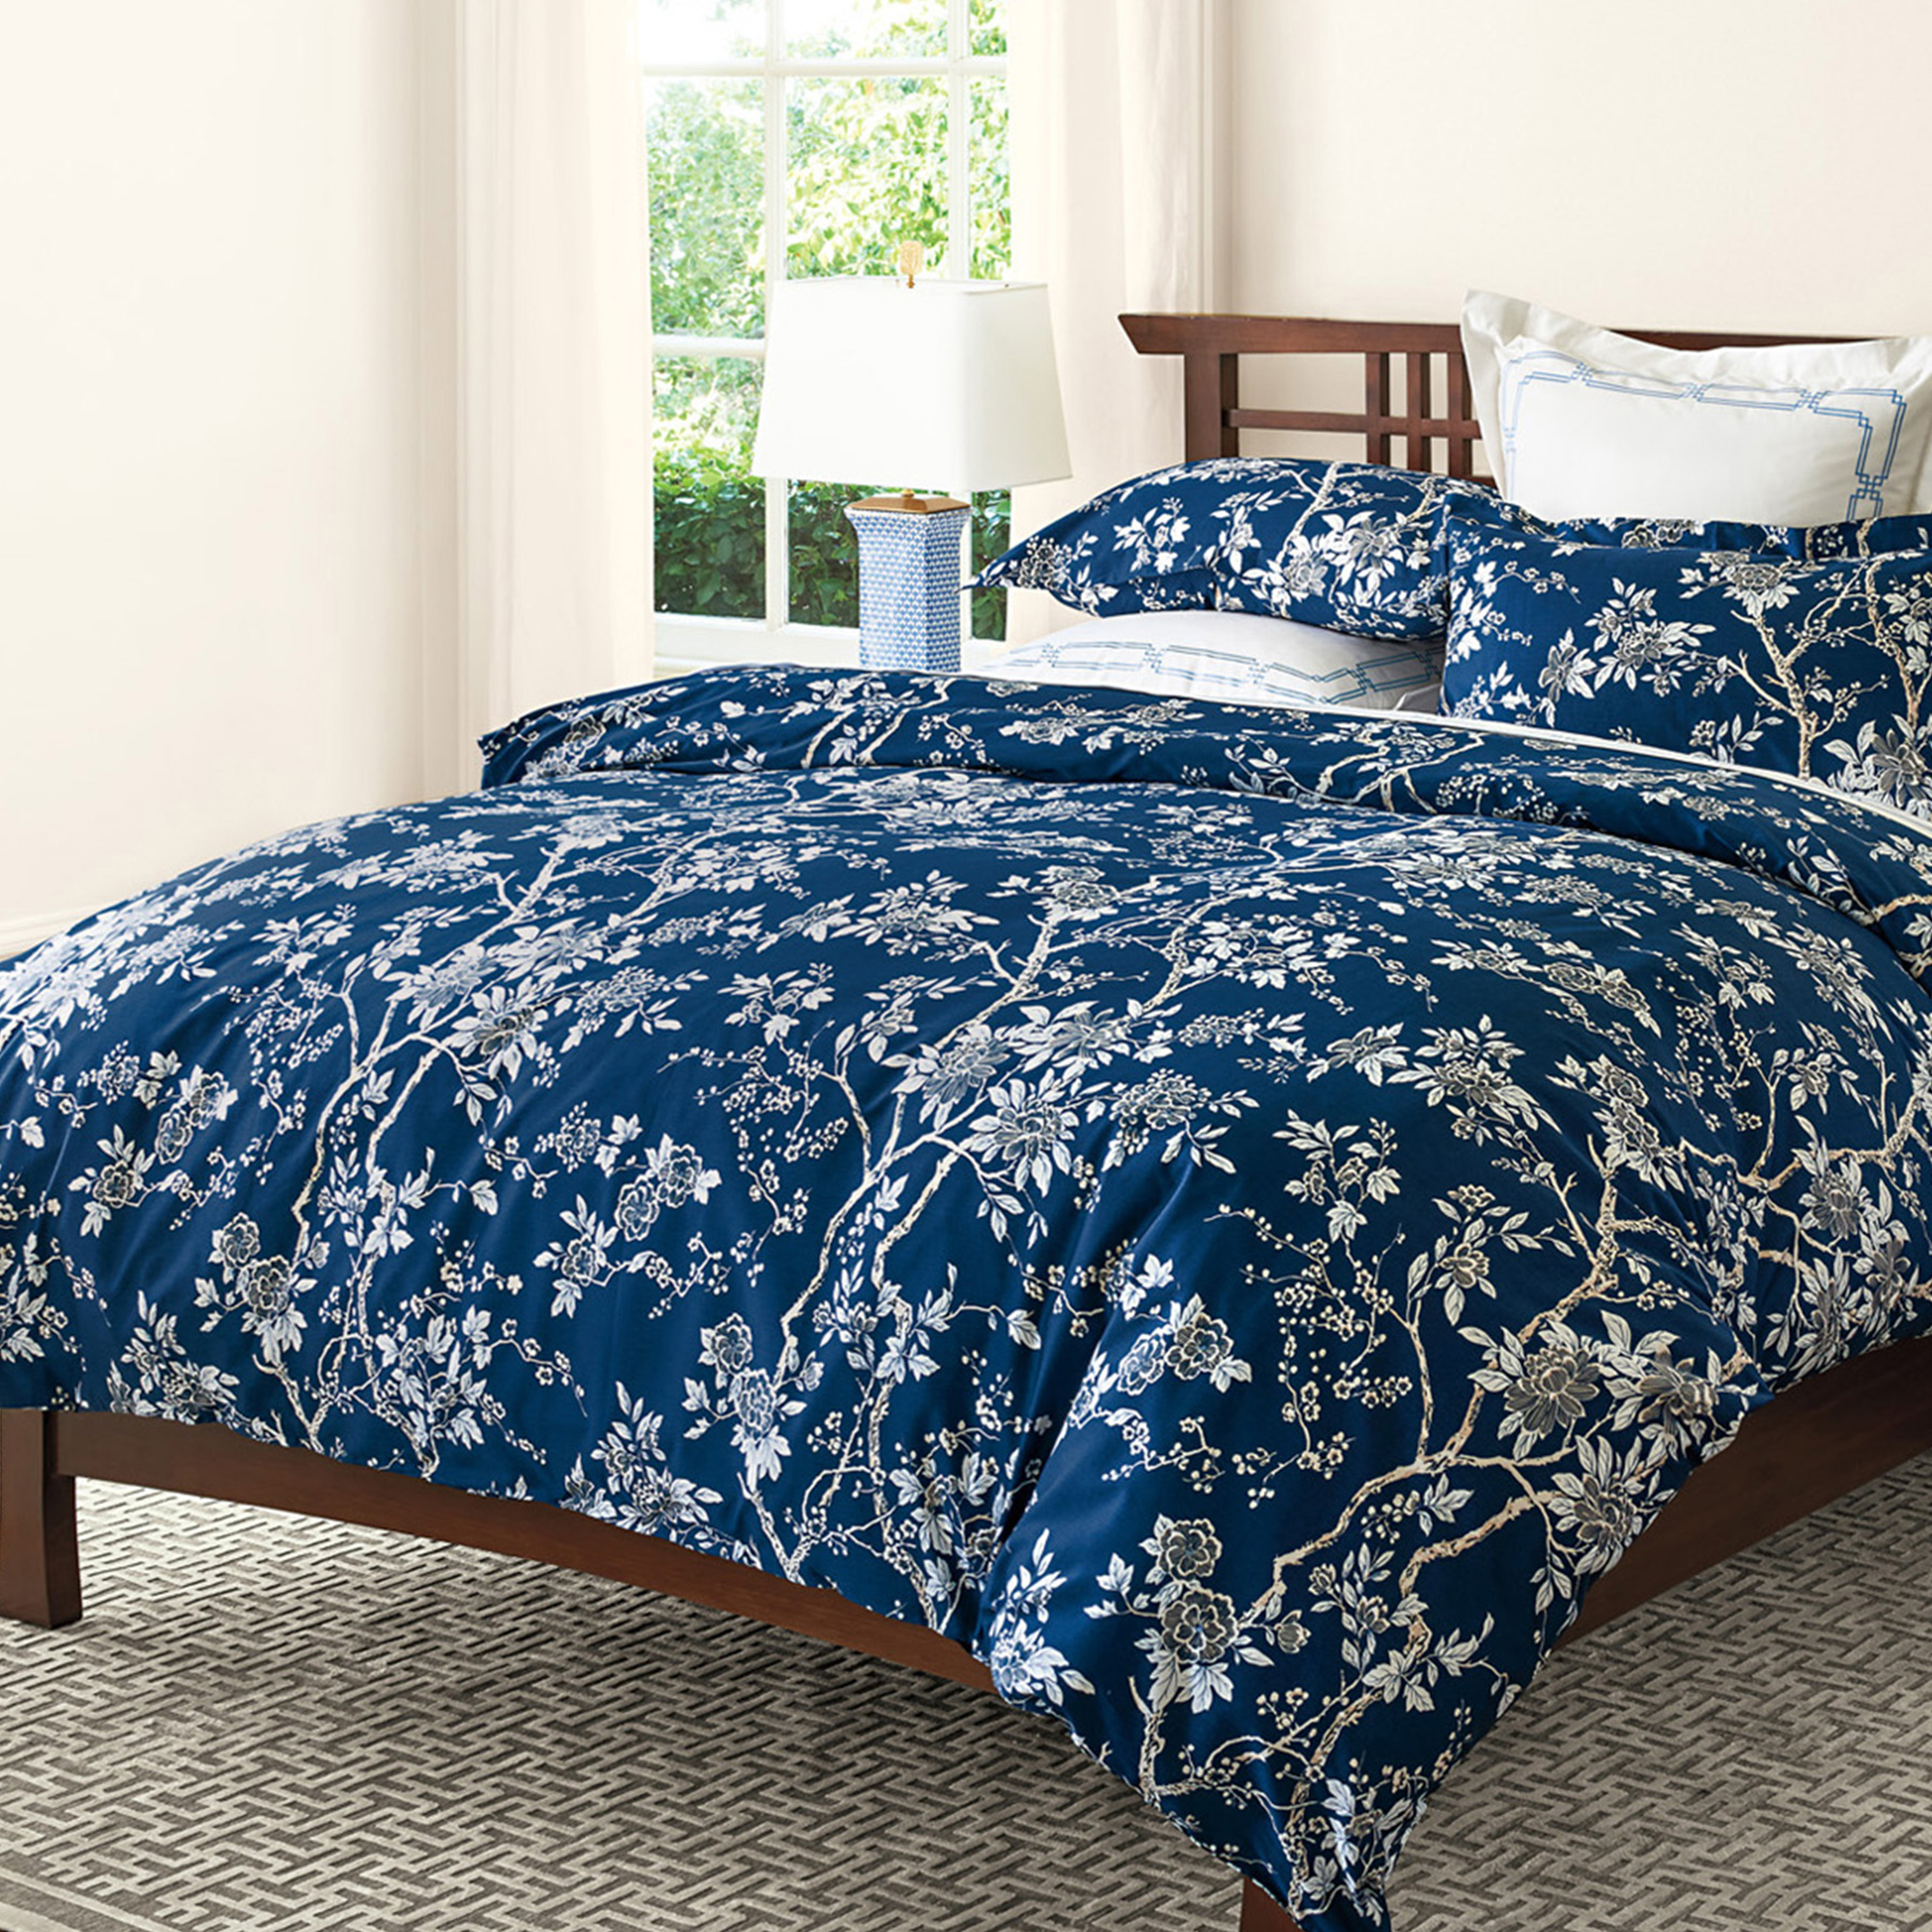 Indigo Chinoiserie Bedding